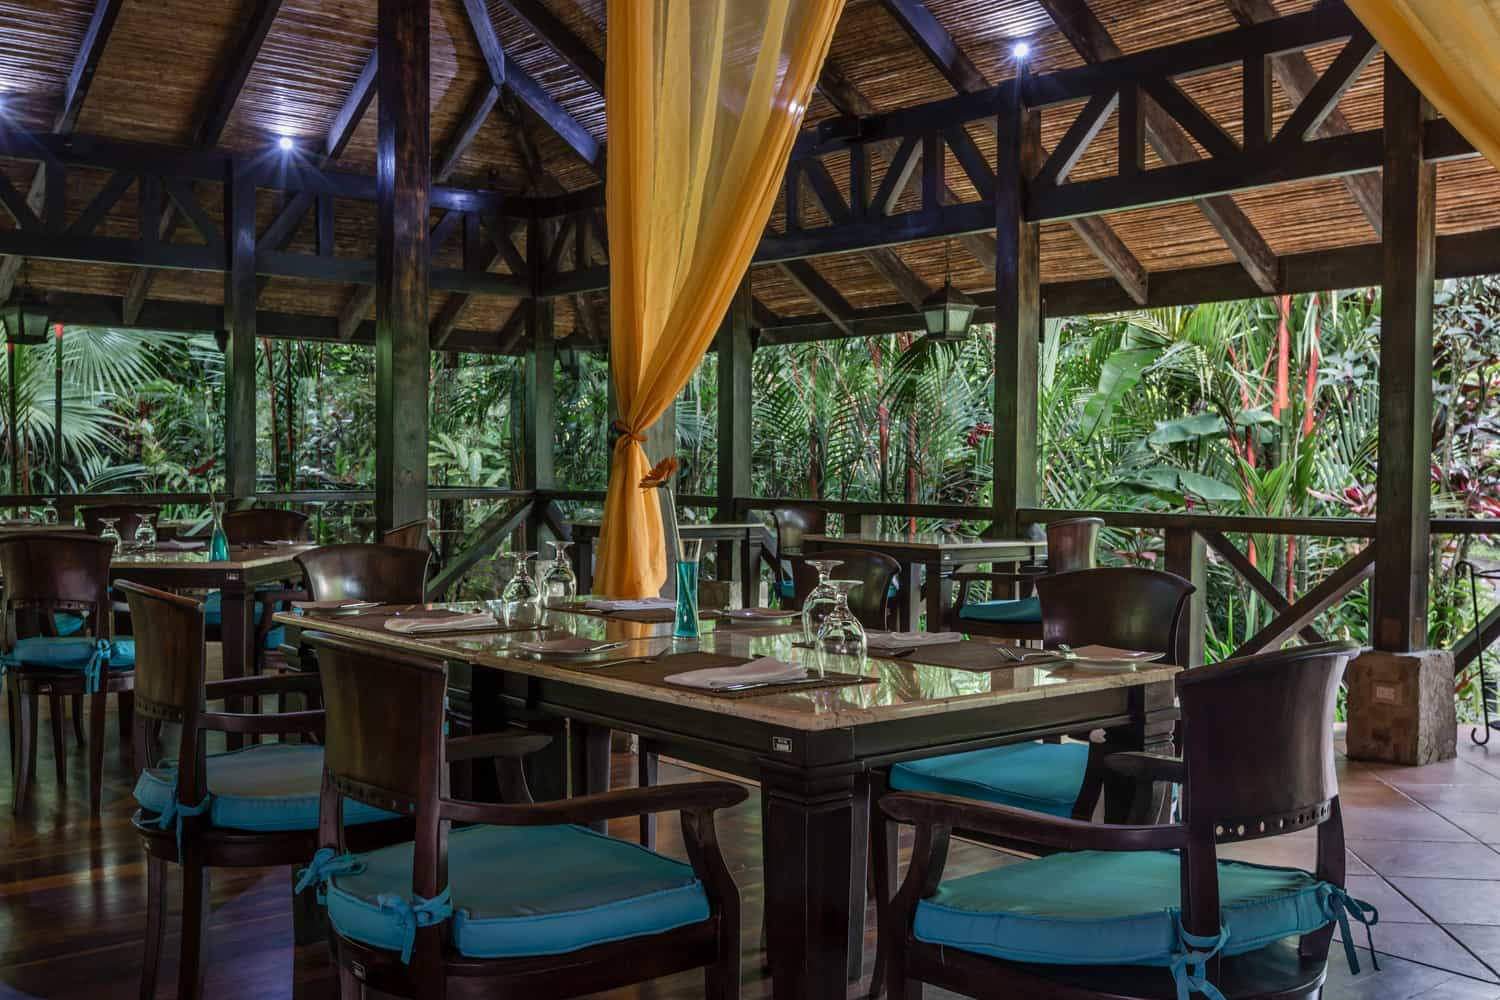 Have a marvelous wedding reception at Rio Celeste Hideaway Hotel's gourmet restaurant.